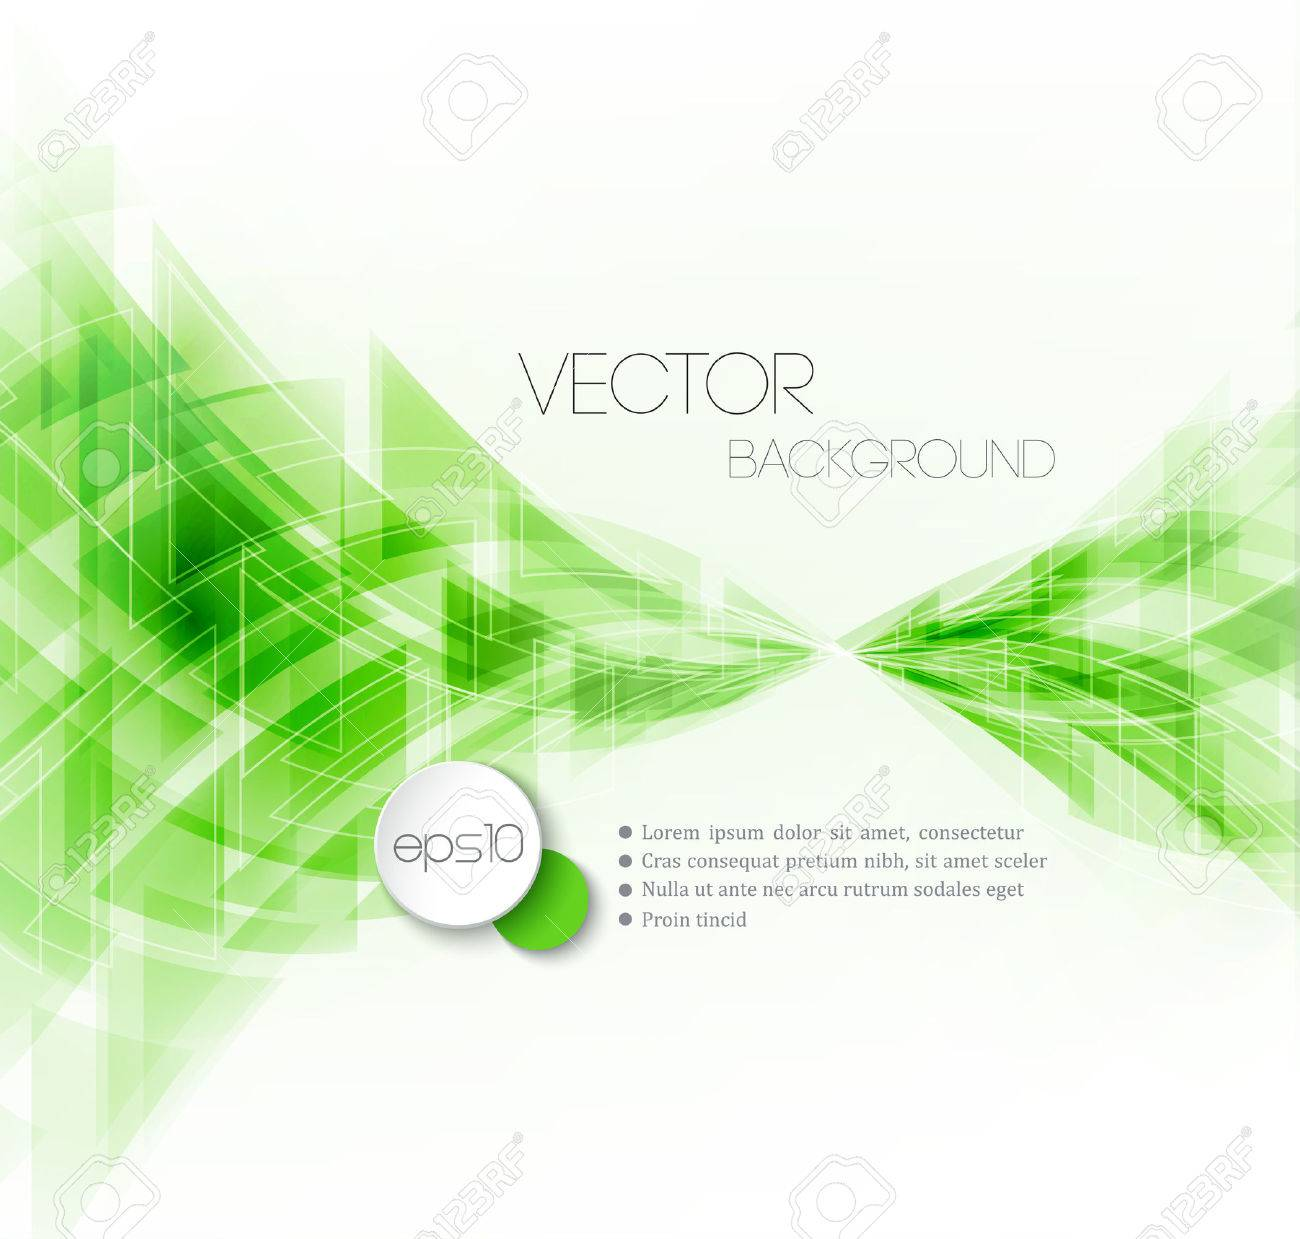 Vector Abstract Geometric Background. Triangular design. - 45044164